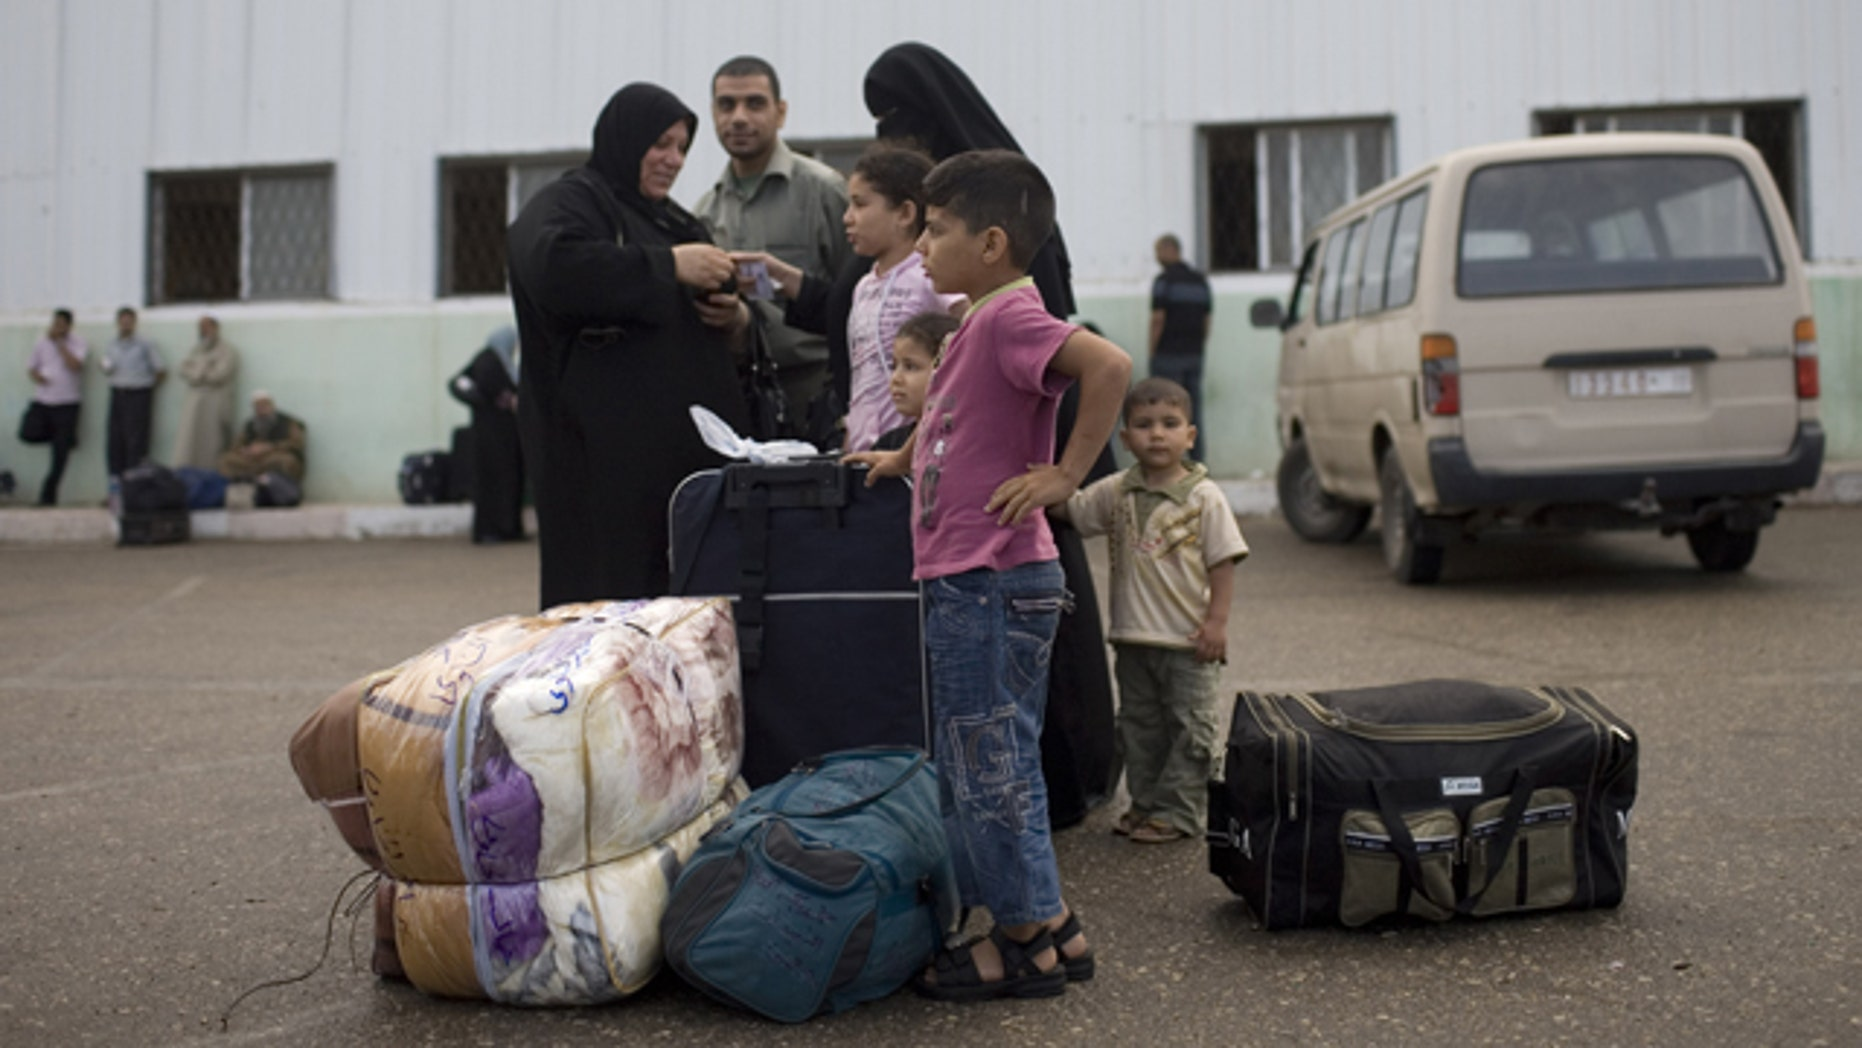 May 28, 2011: A Palestinian family waits before crossing into Egypt through the Rafah border crossing, southern Gaza Strip. After four years, Egypt on Saturday permanently opened the Gaza Strip's main gateway to the outside world, bringing long-awaited relief to the territory's Palestinian population and a significant achievement for the area's ruling Hamas militant group.